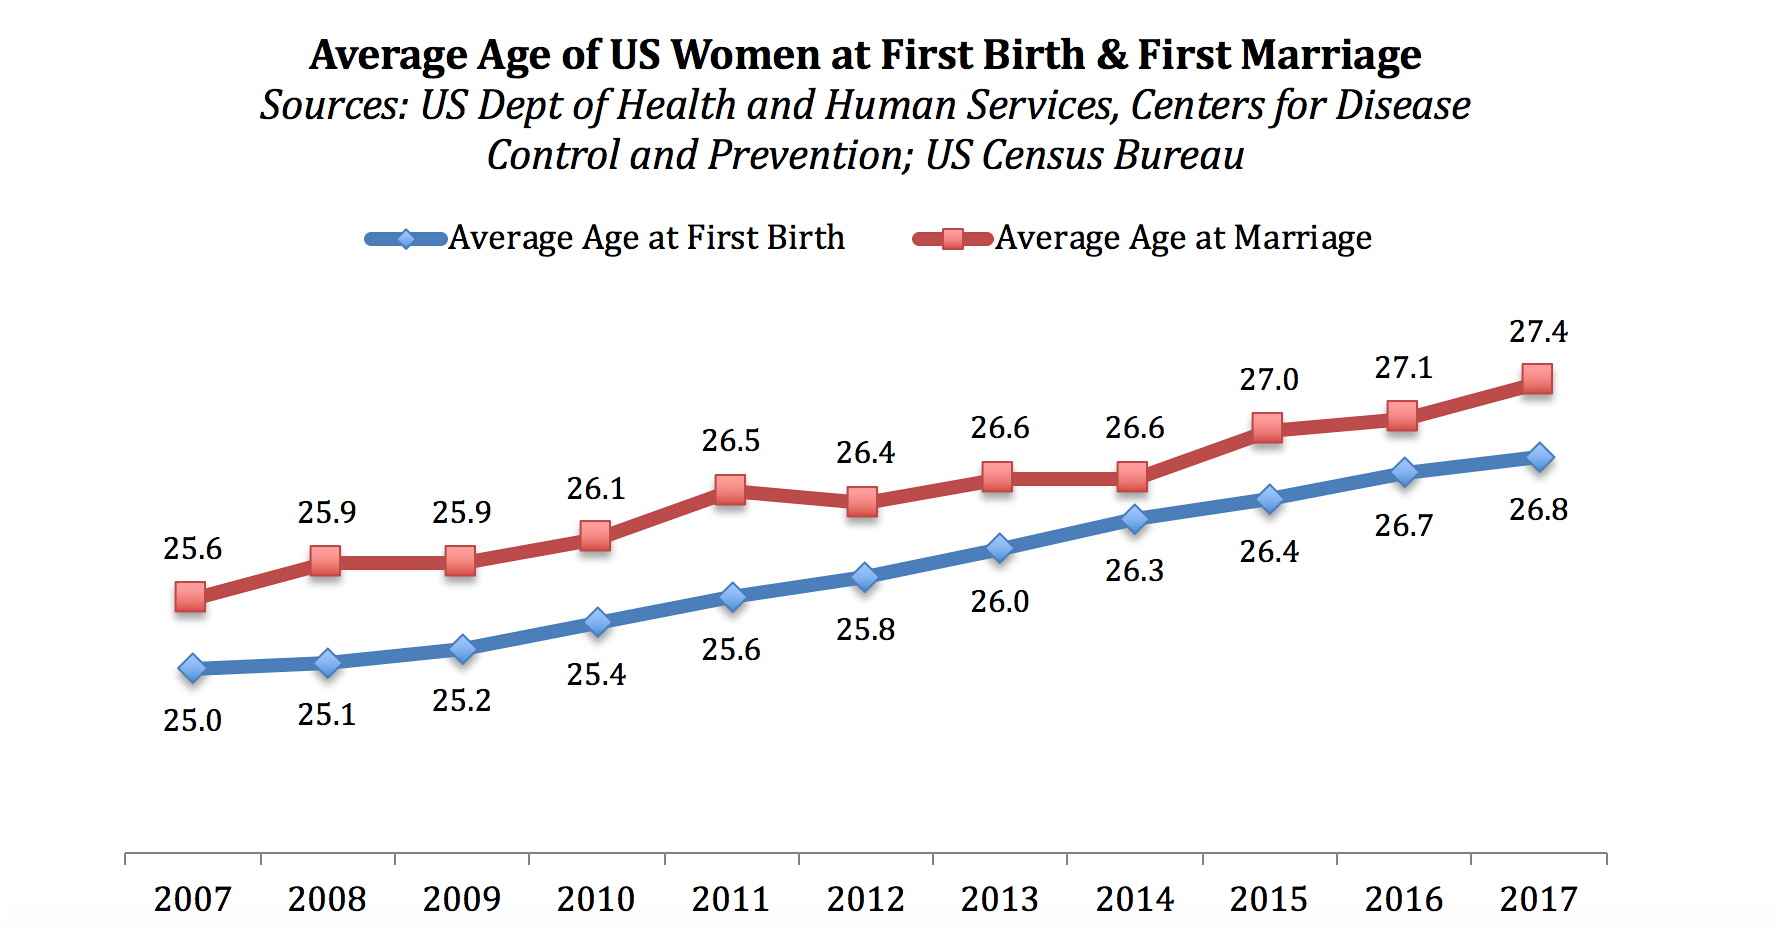 Figure 8: Average Age of US Women at First Birth & Marriage